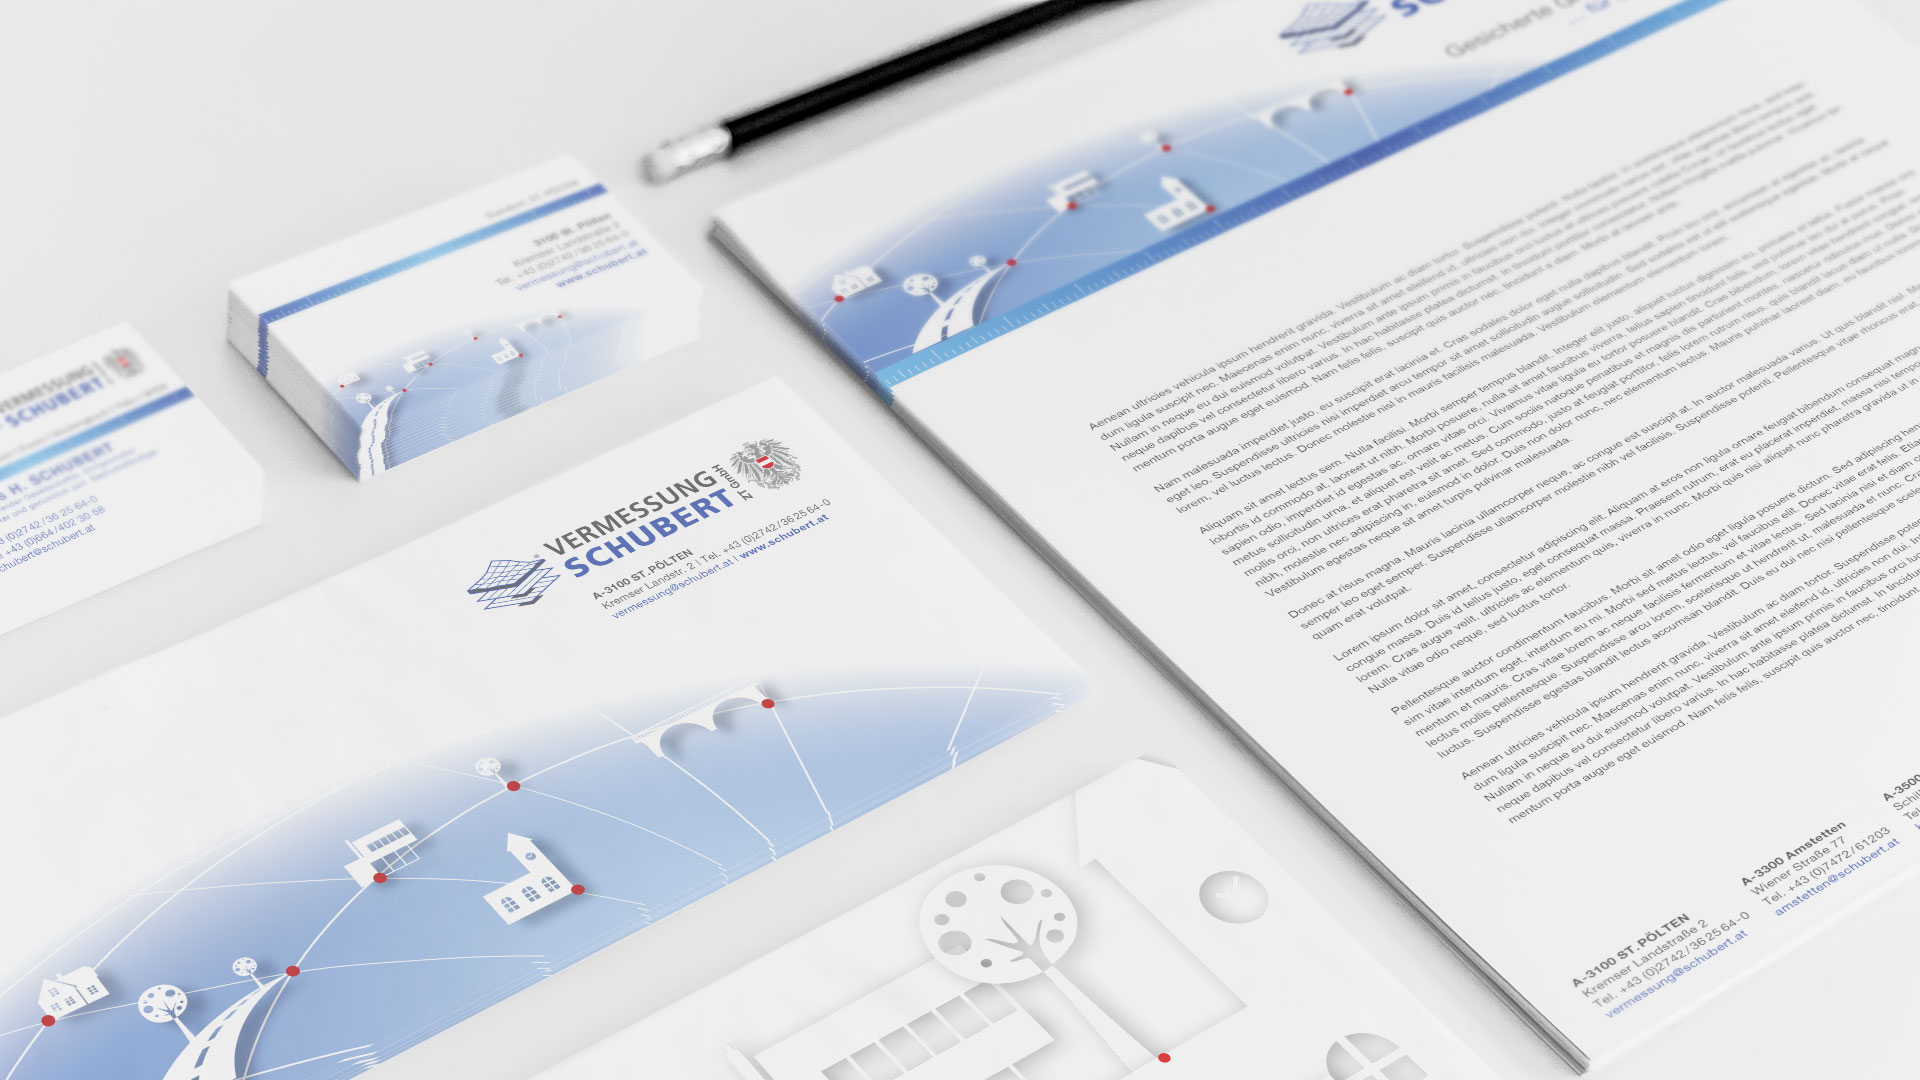 Schubert Corporate Design